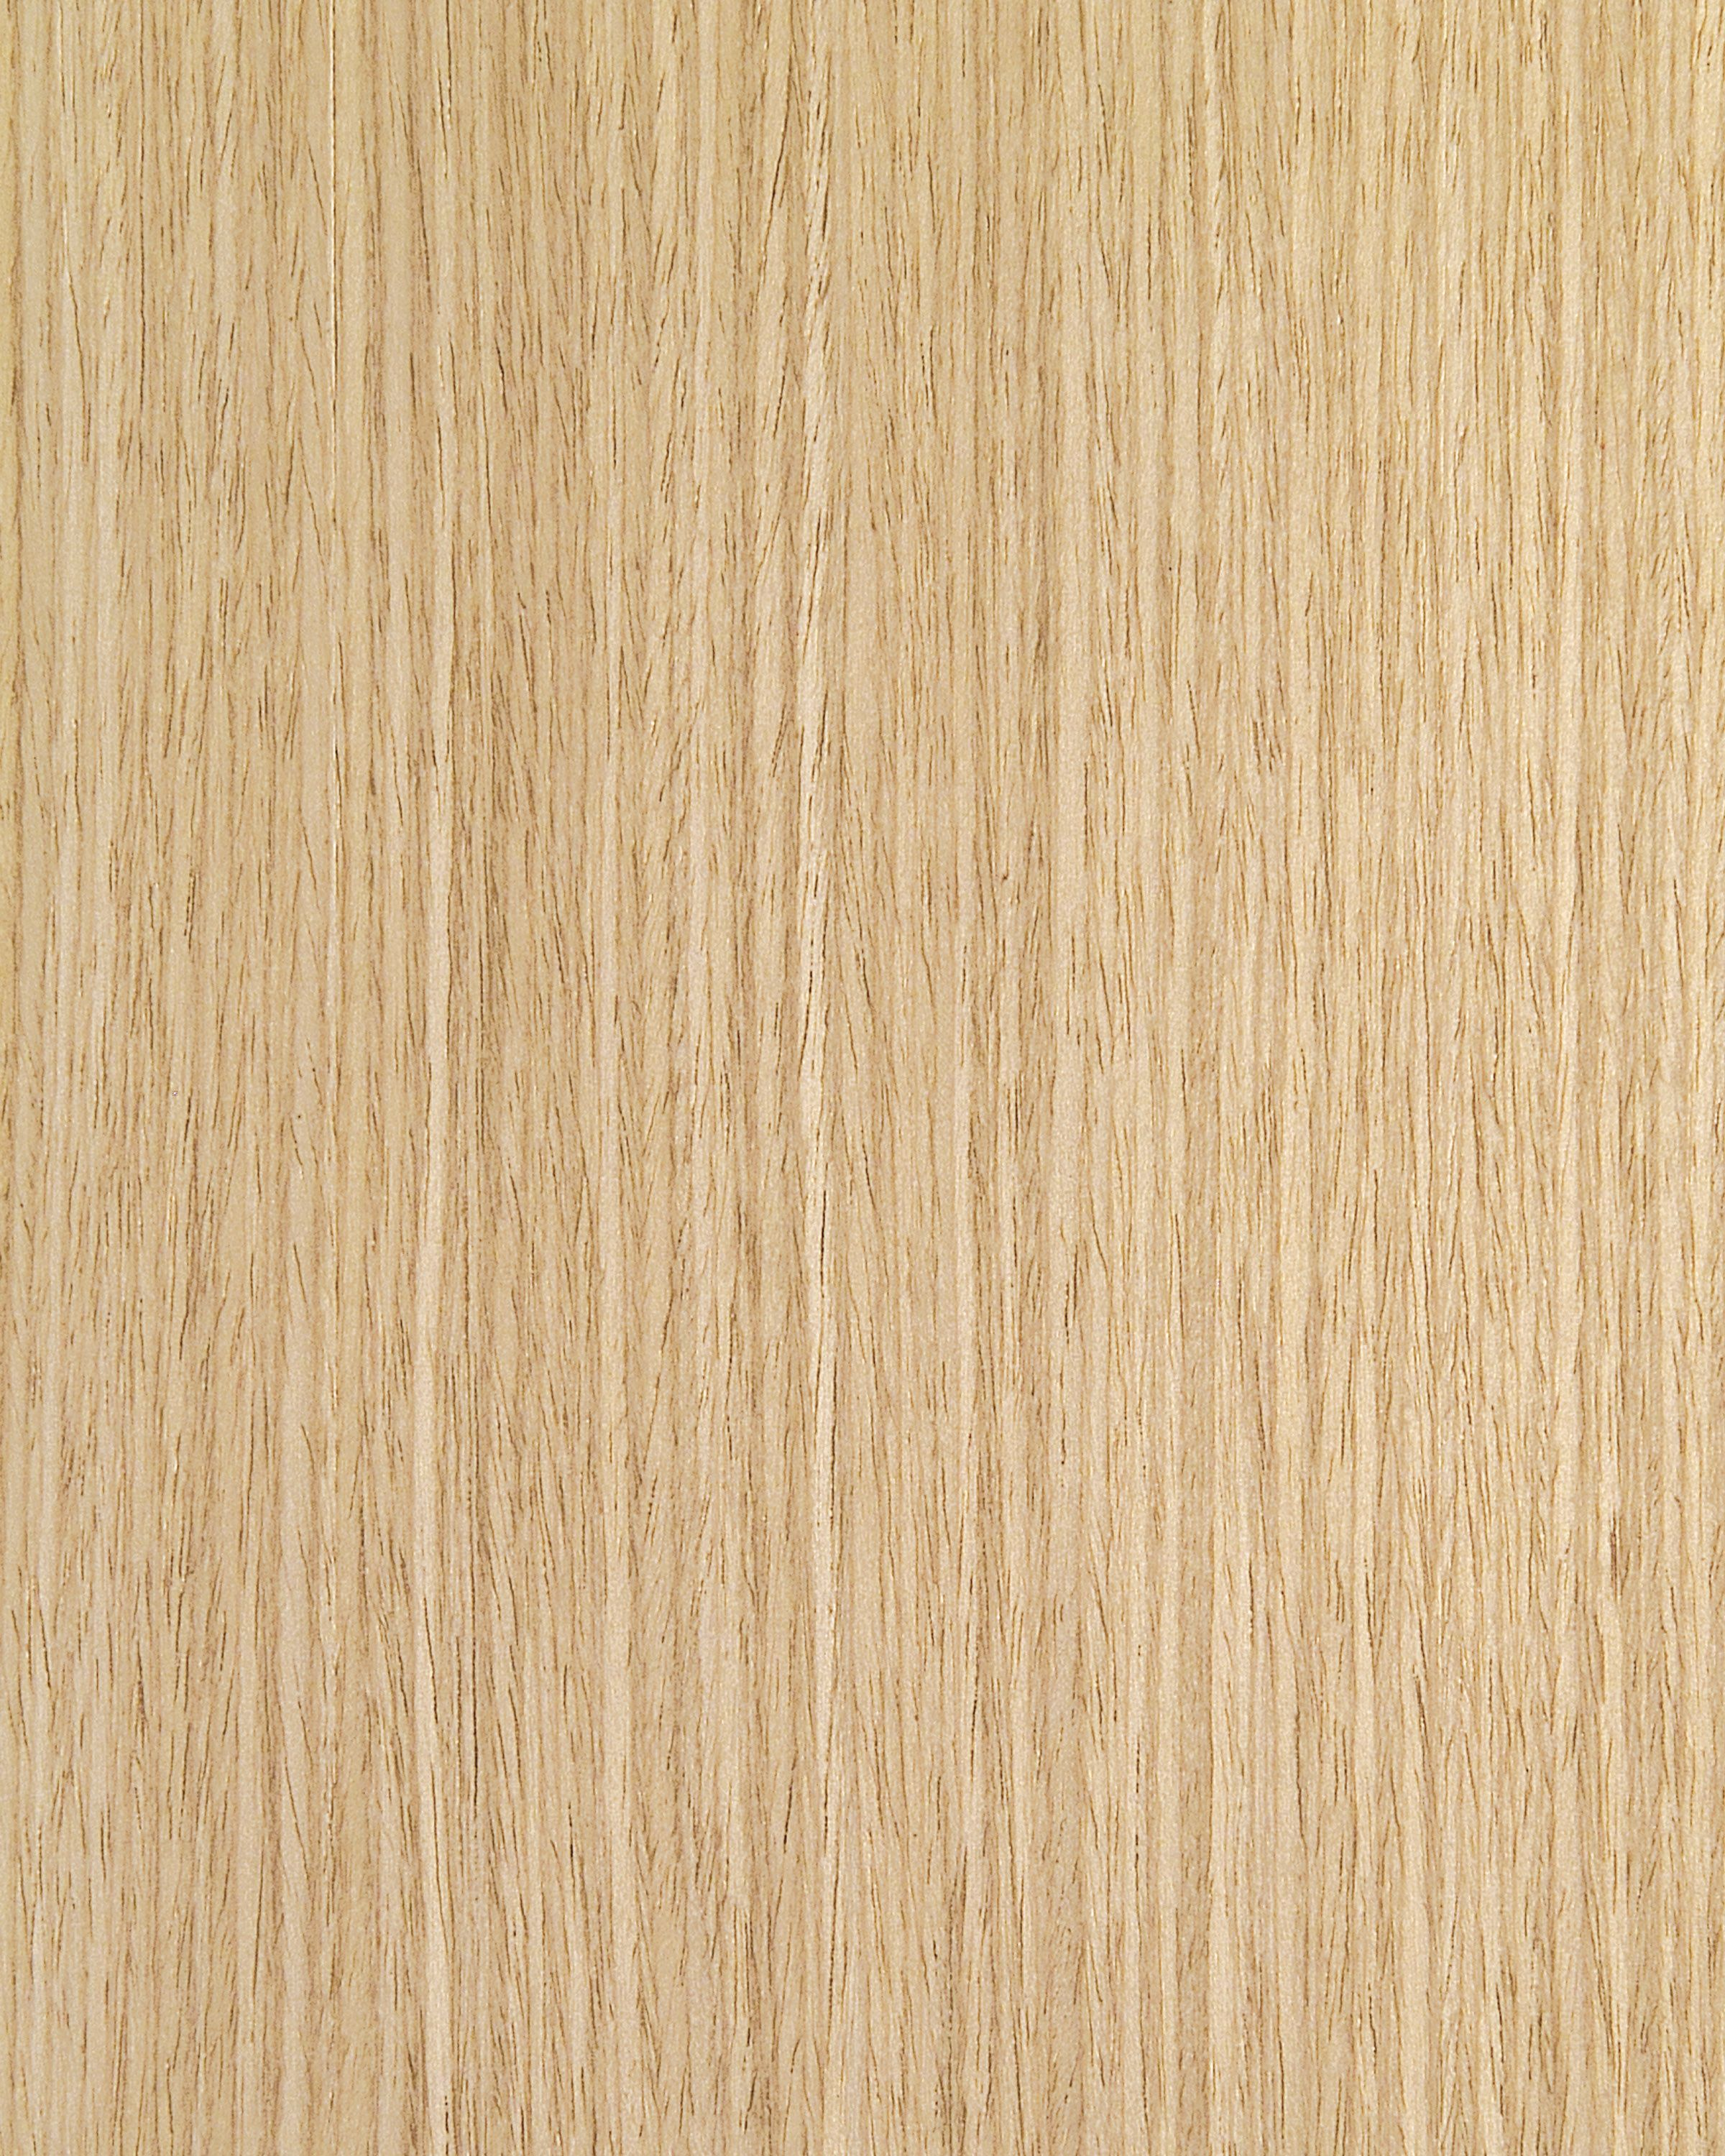 White oak wood google search material in